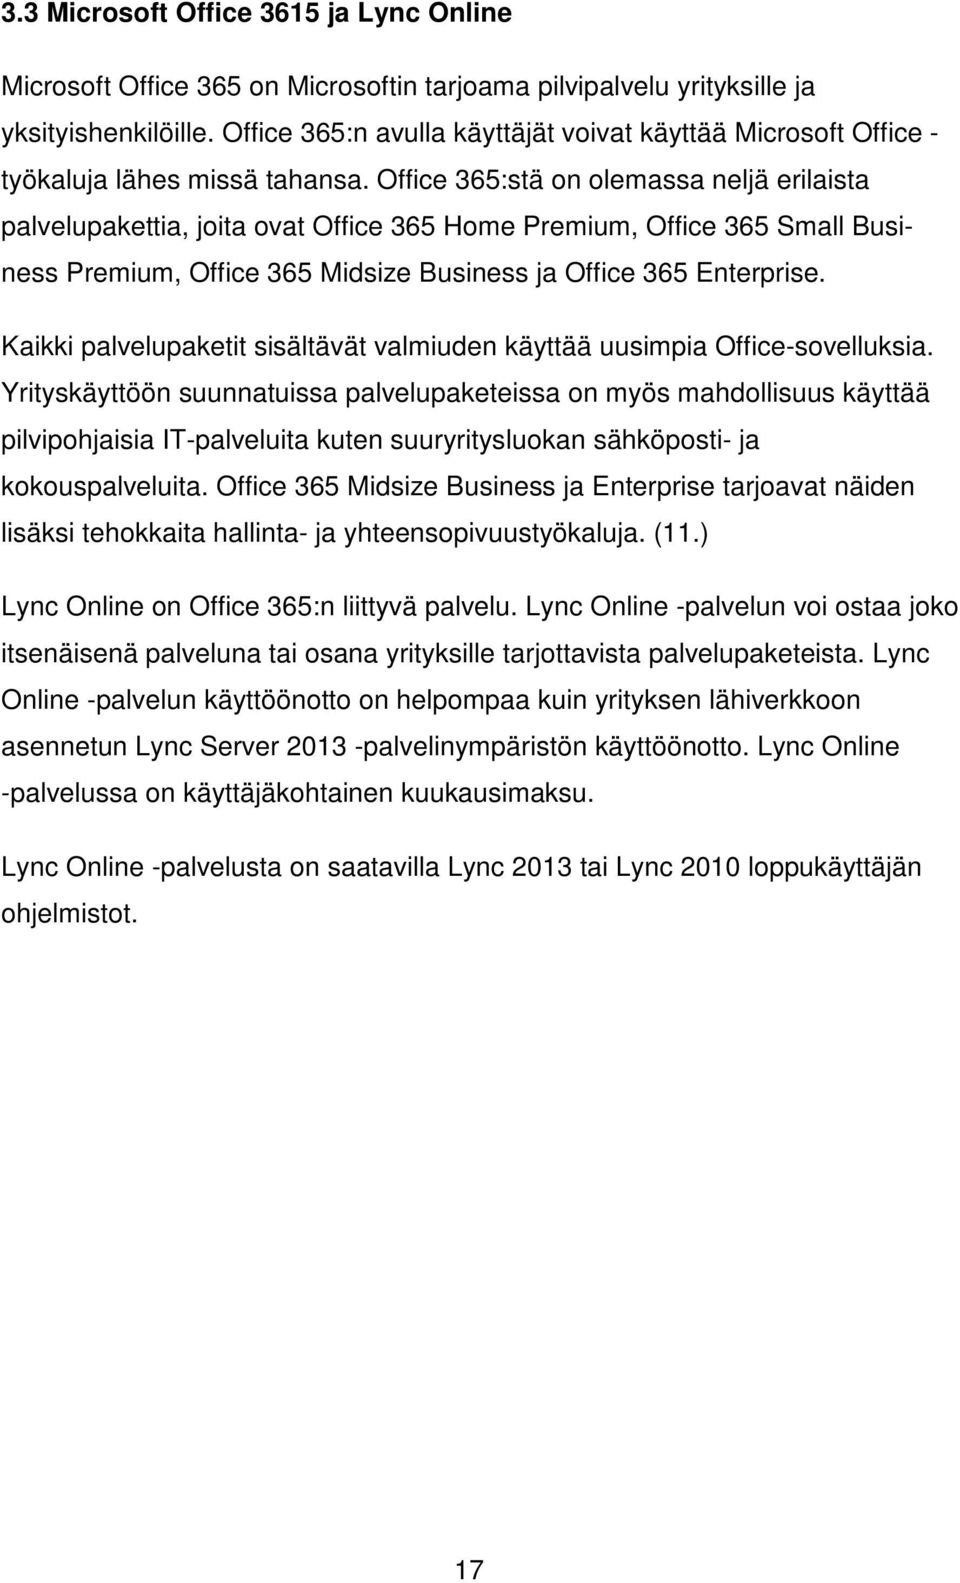 Office 365:stä on olemassa neljä erilaista palvelupakettia, joita ovat Office 365 Home Premium, Office 365 Small Business Premium, Office 365 Midsize Business ja Office 365 Enterprise.